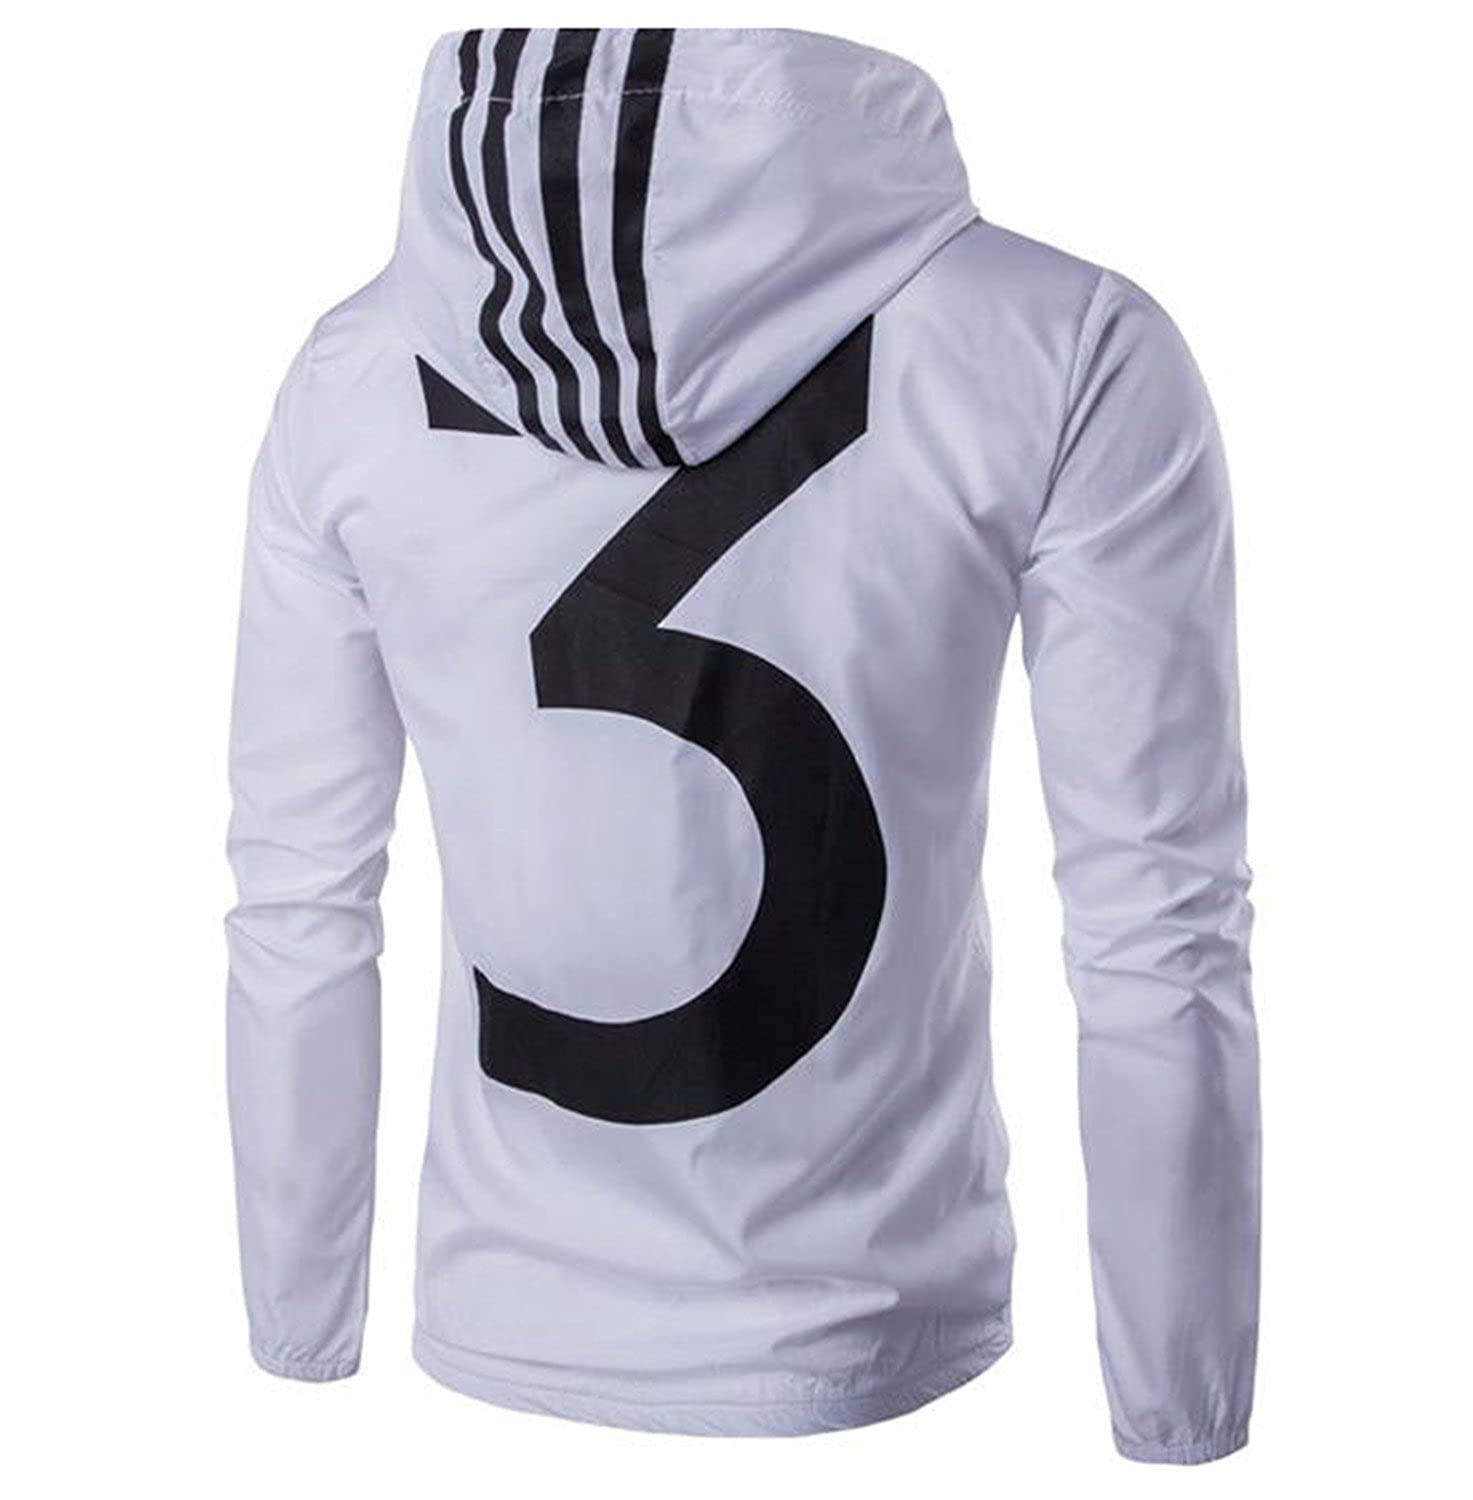 Marvin Cook Summer Spring Style Men Jacket Black White Color Y-3